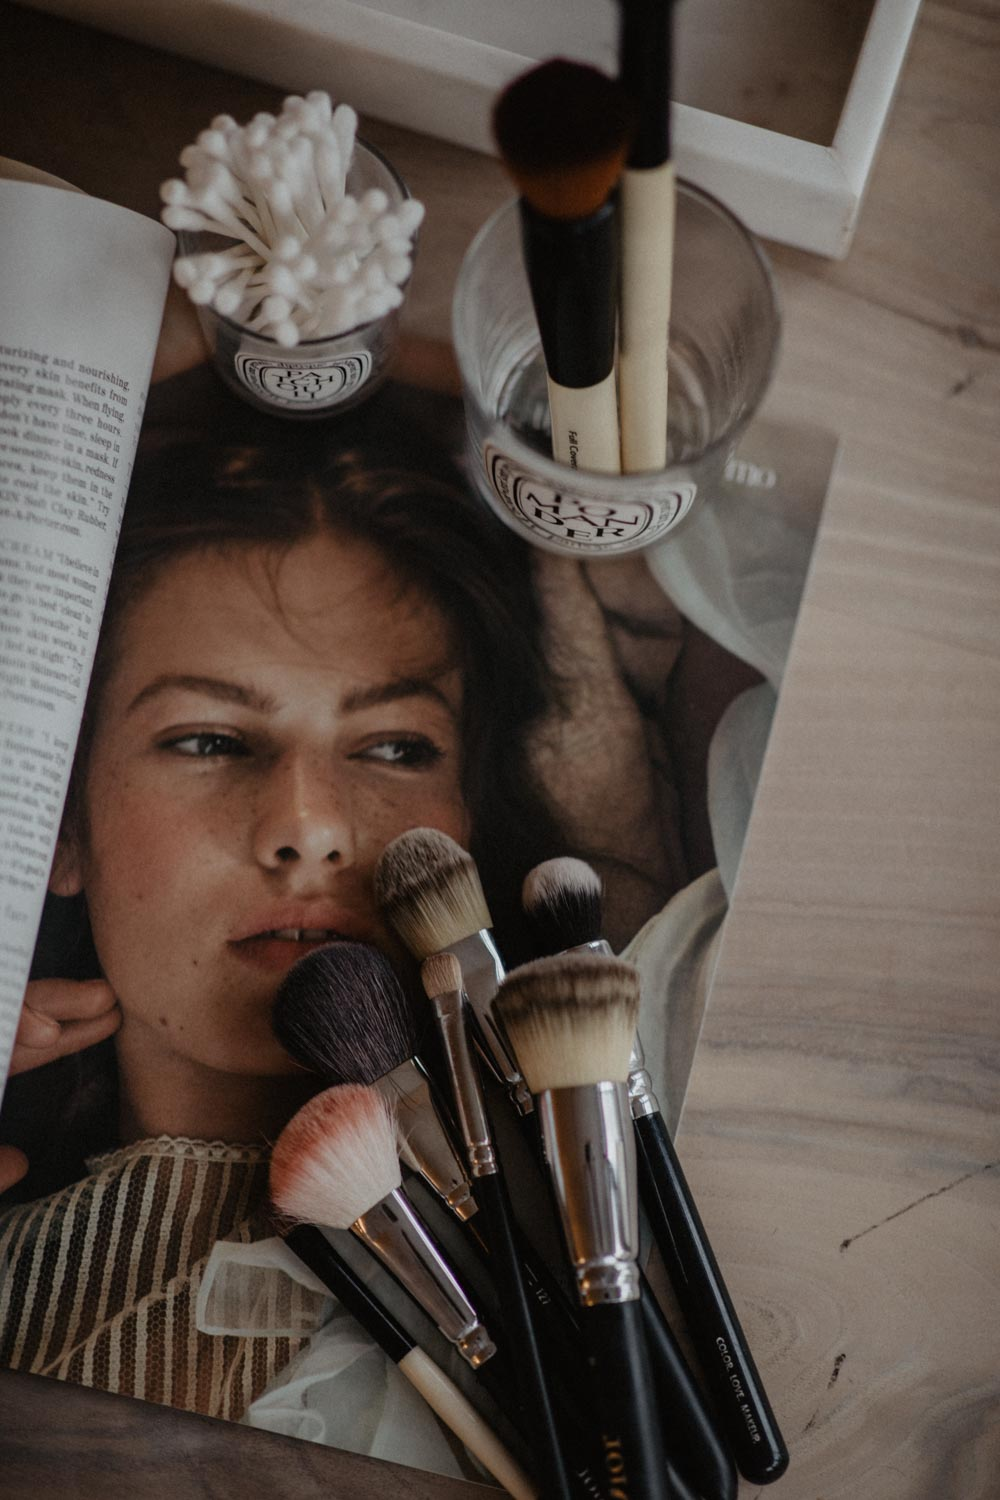 Make Up Brush Care: Die richtige Pflege für Pinsel